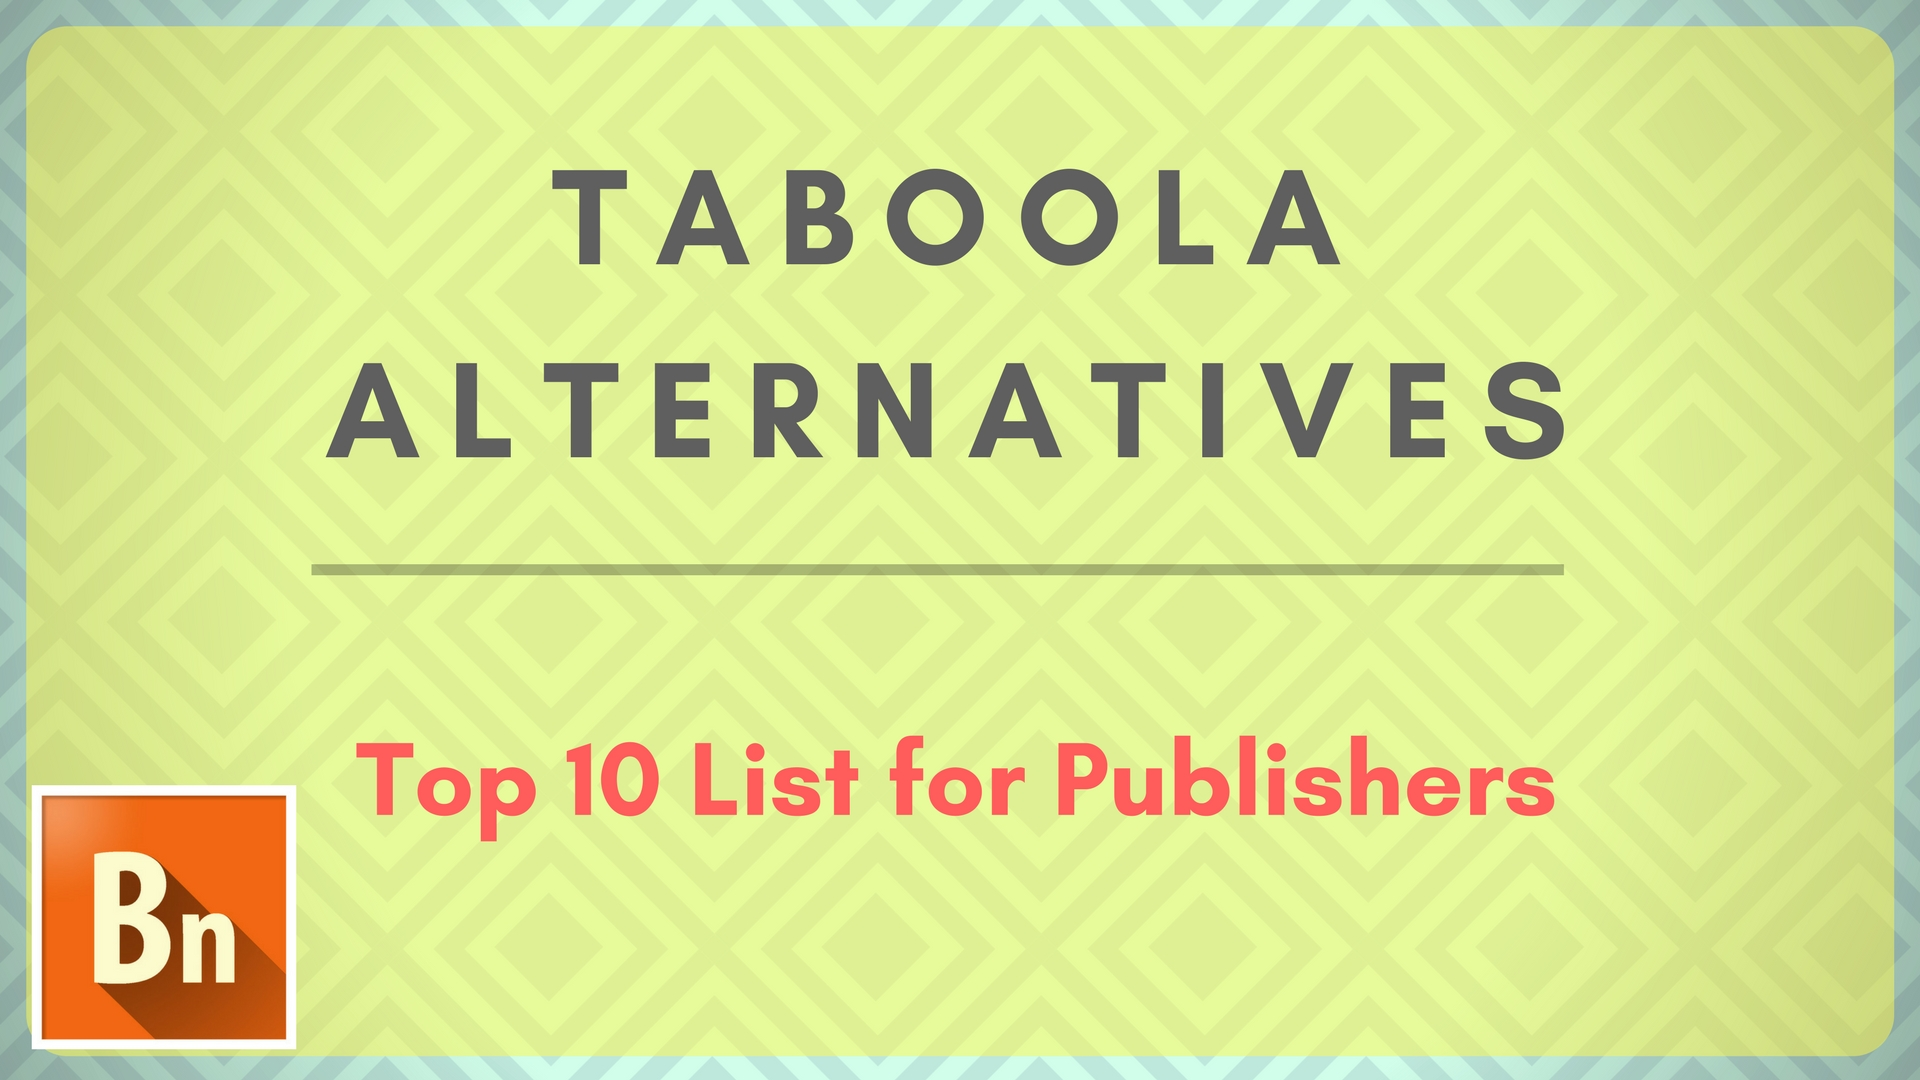 Taboola Alterantives : Top 10 List for Publishers